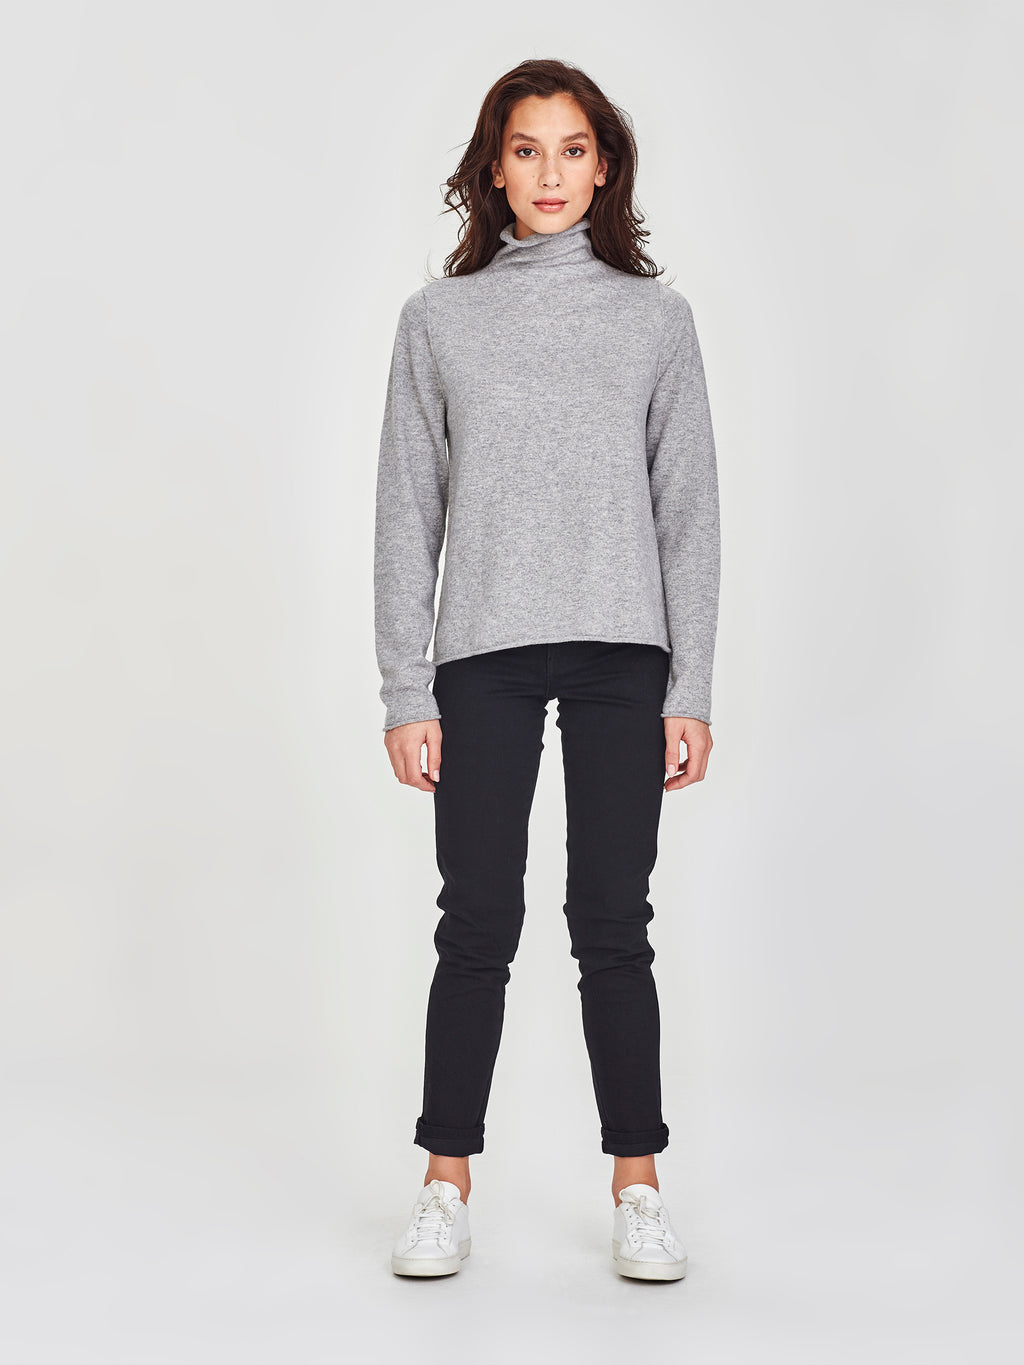 Ever Cashmere Top (Cashmere) Grey Marle